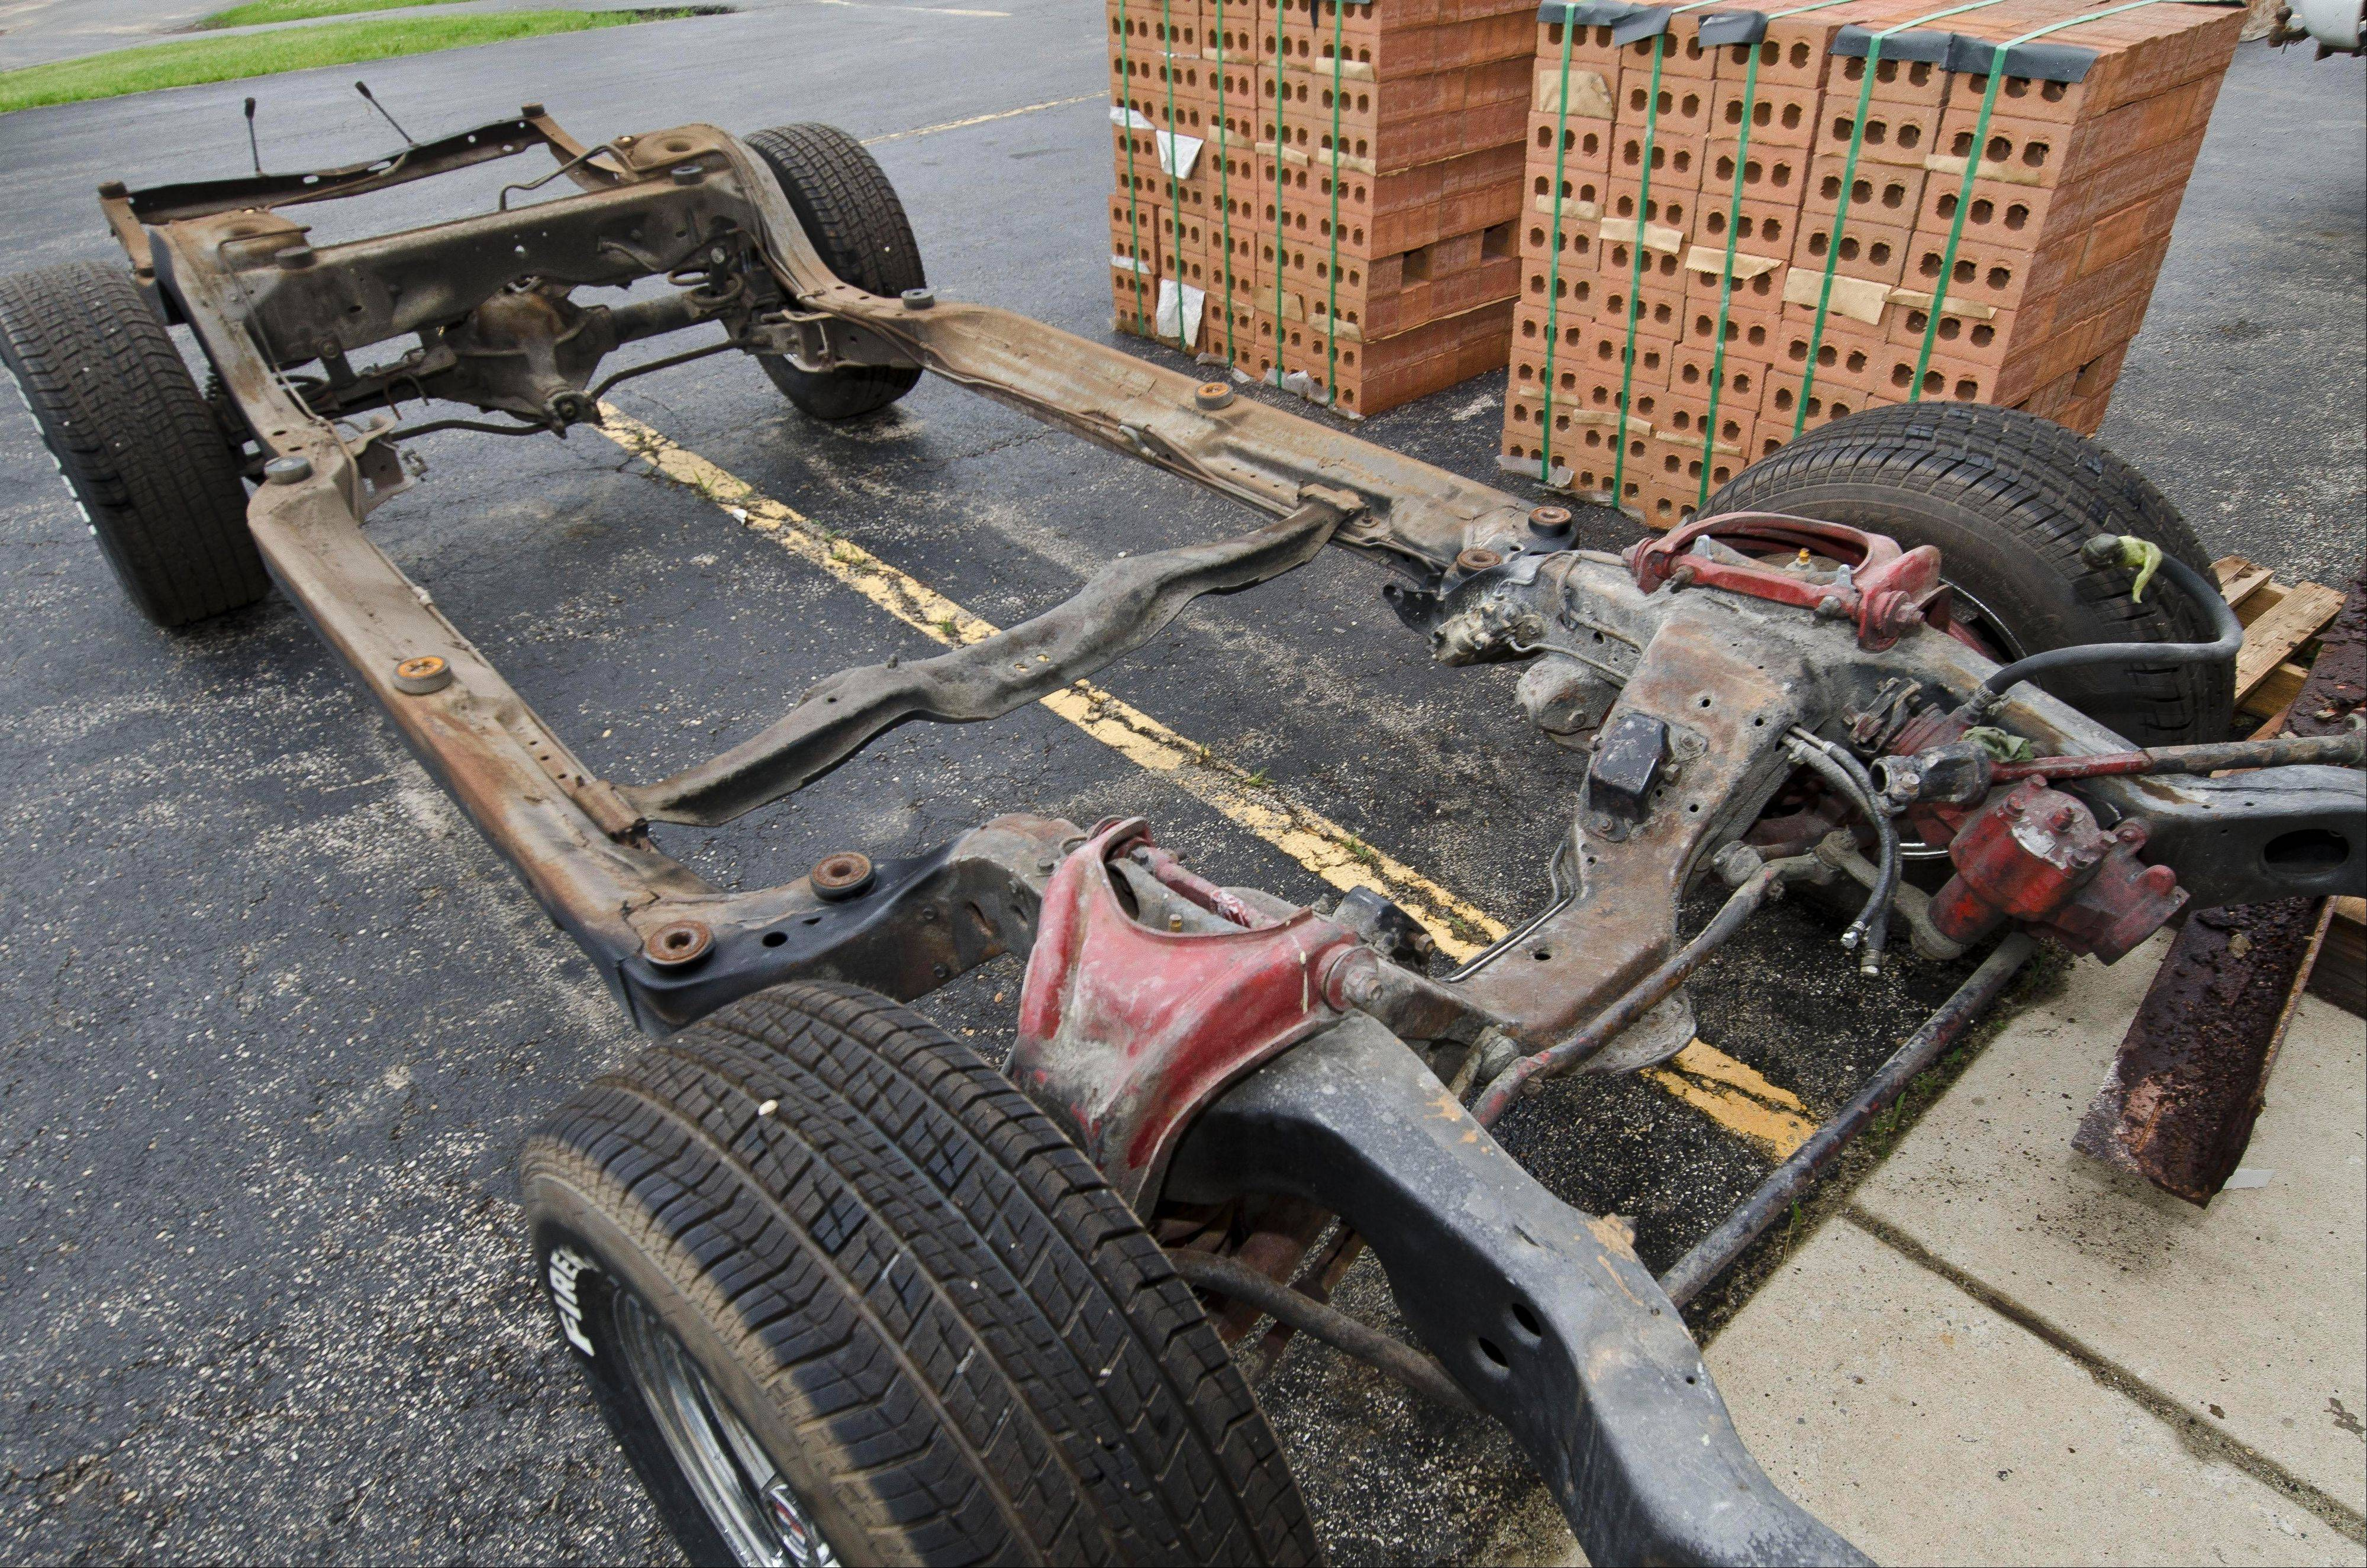 The old frame after it has been removed from a vehicle at Schwartz Performance in Woodstock.